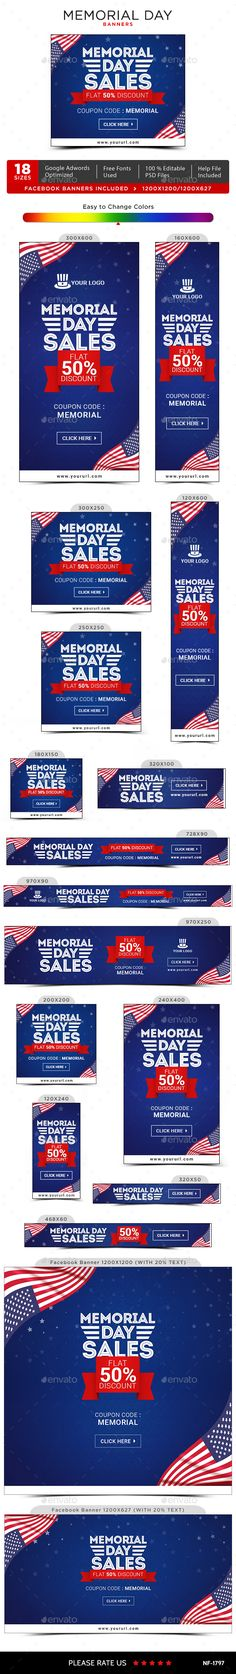 Memorial Day Banners Template PSD